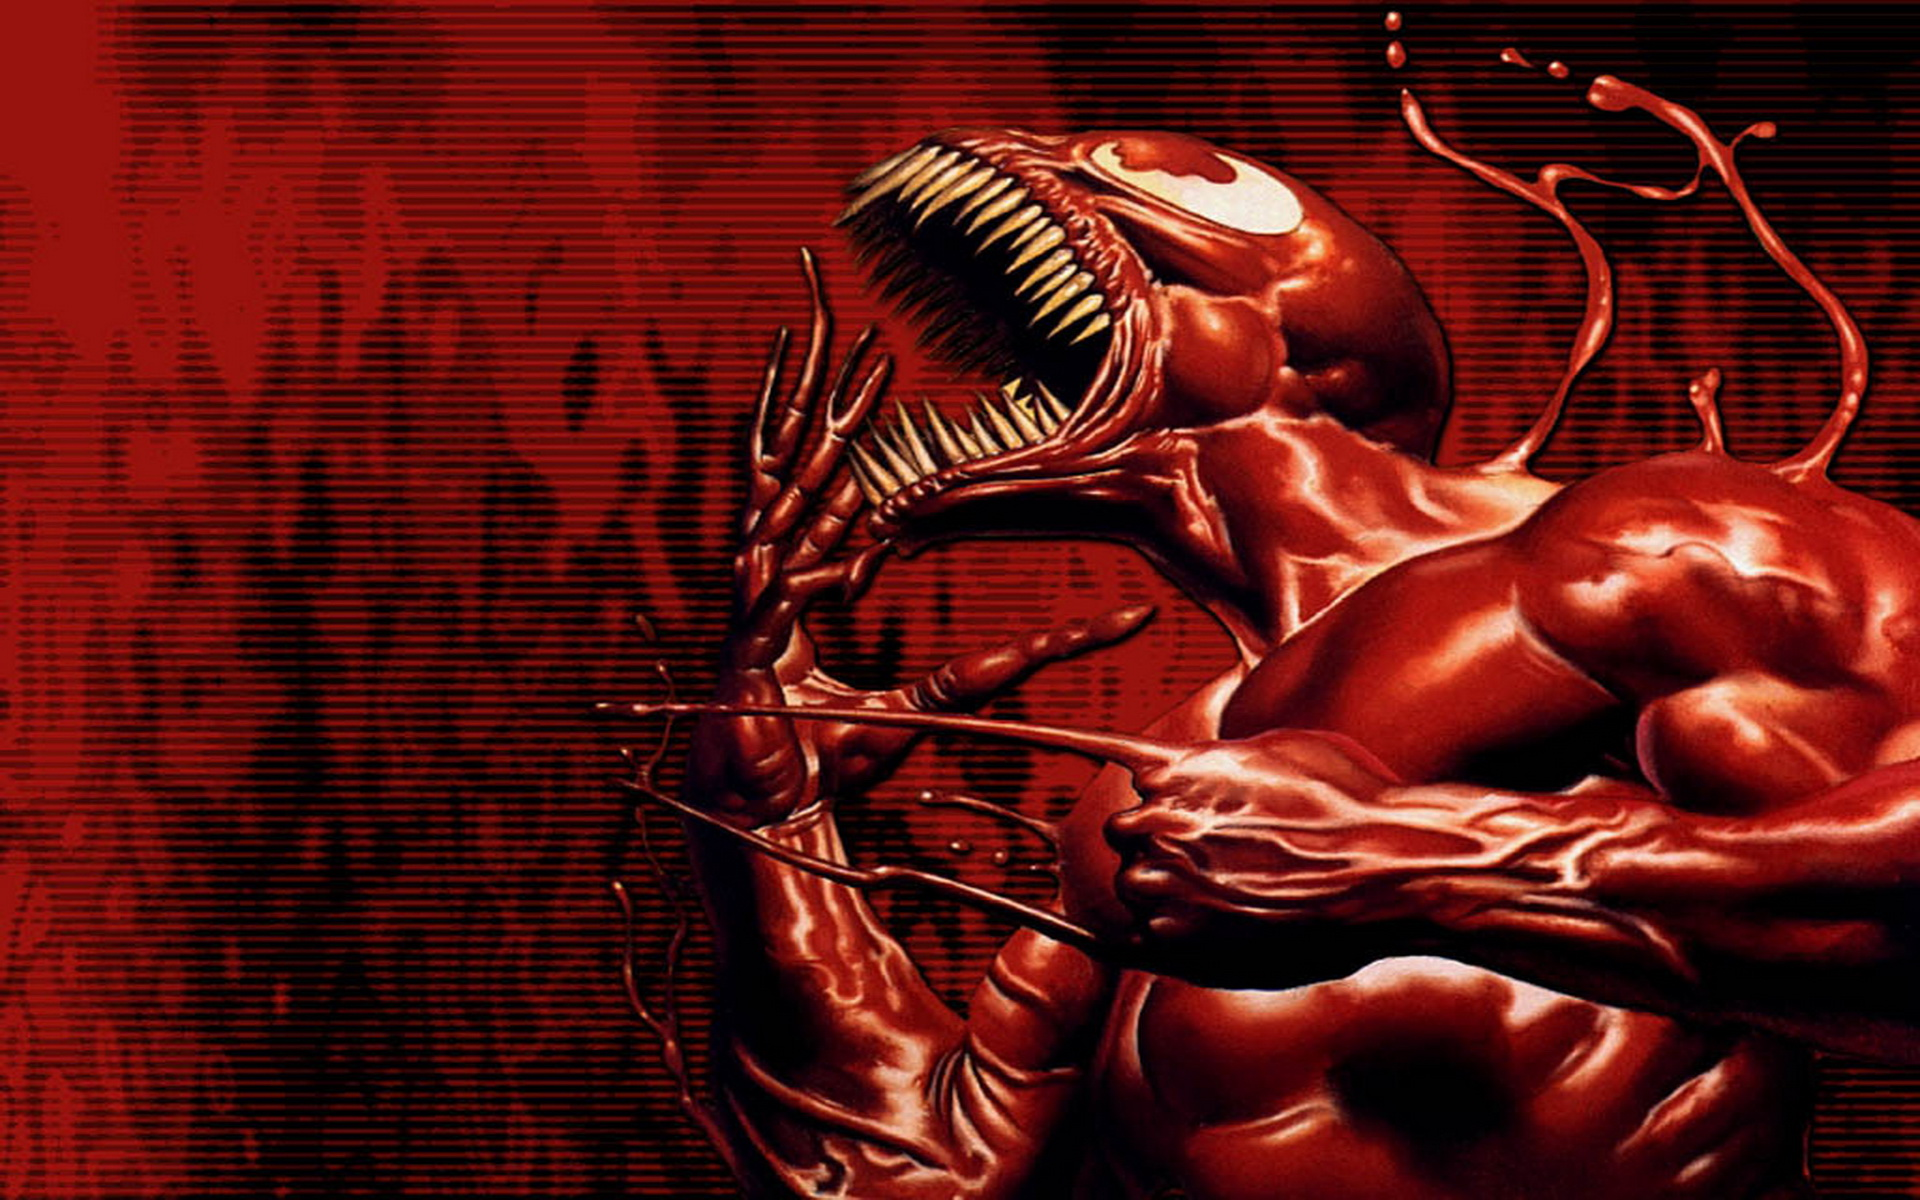 Spider Man Wallpapers Comics Wallpapers Pictures Carnage spider man 1920x1200